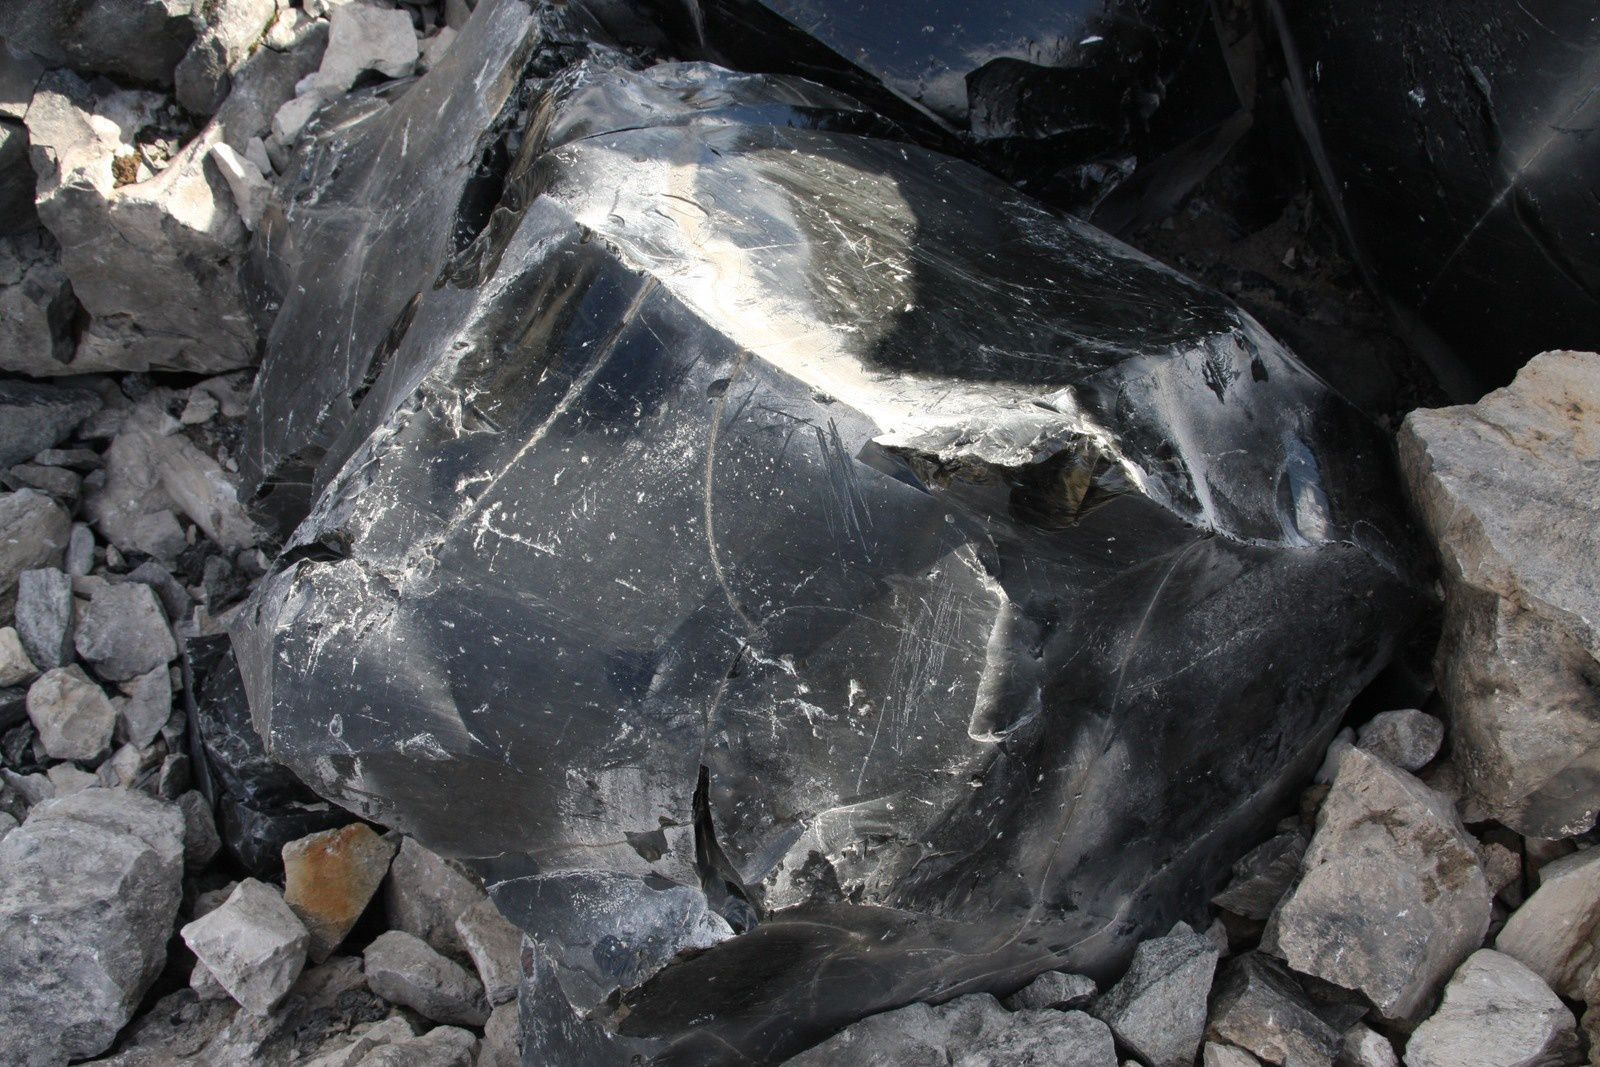 Block of obsidian - Newberry caldera - photo JM.Mestdagh